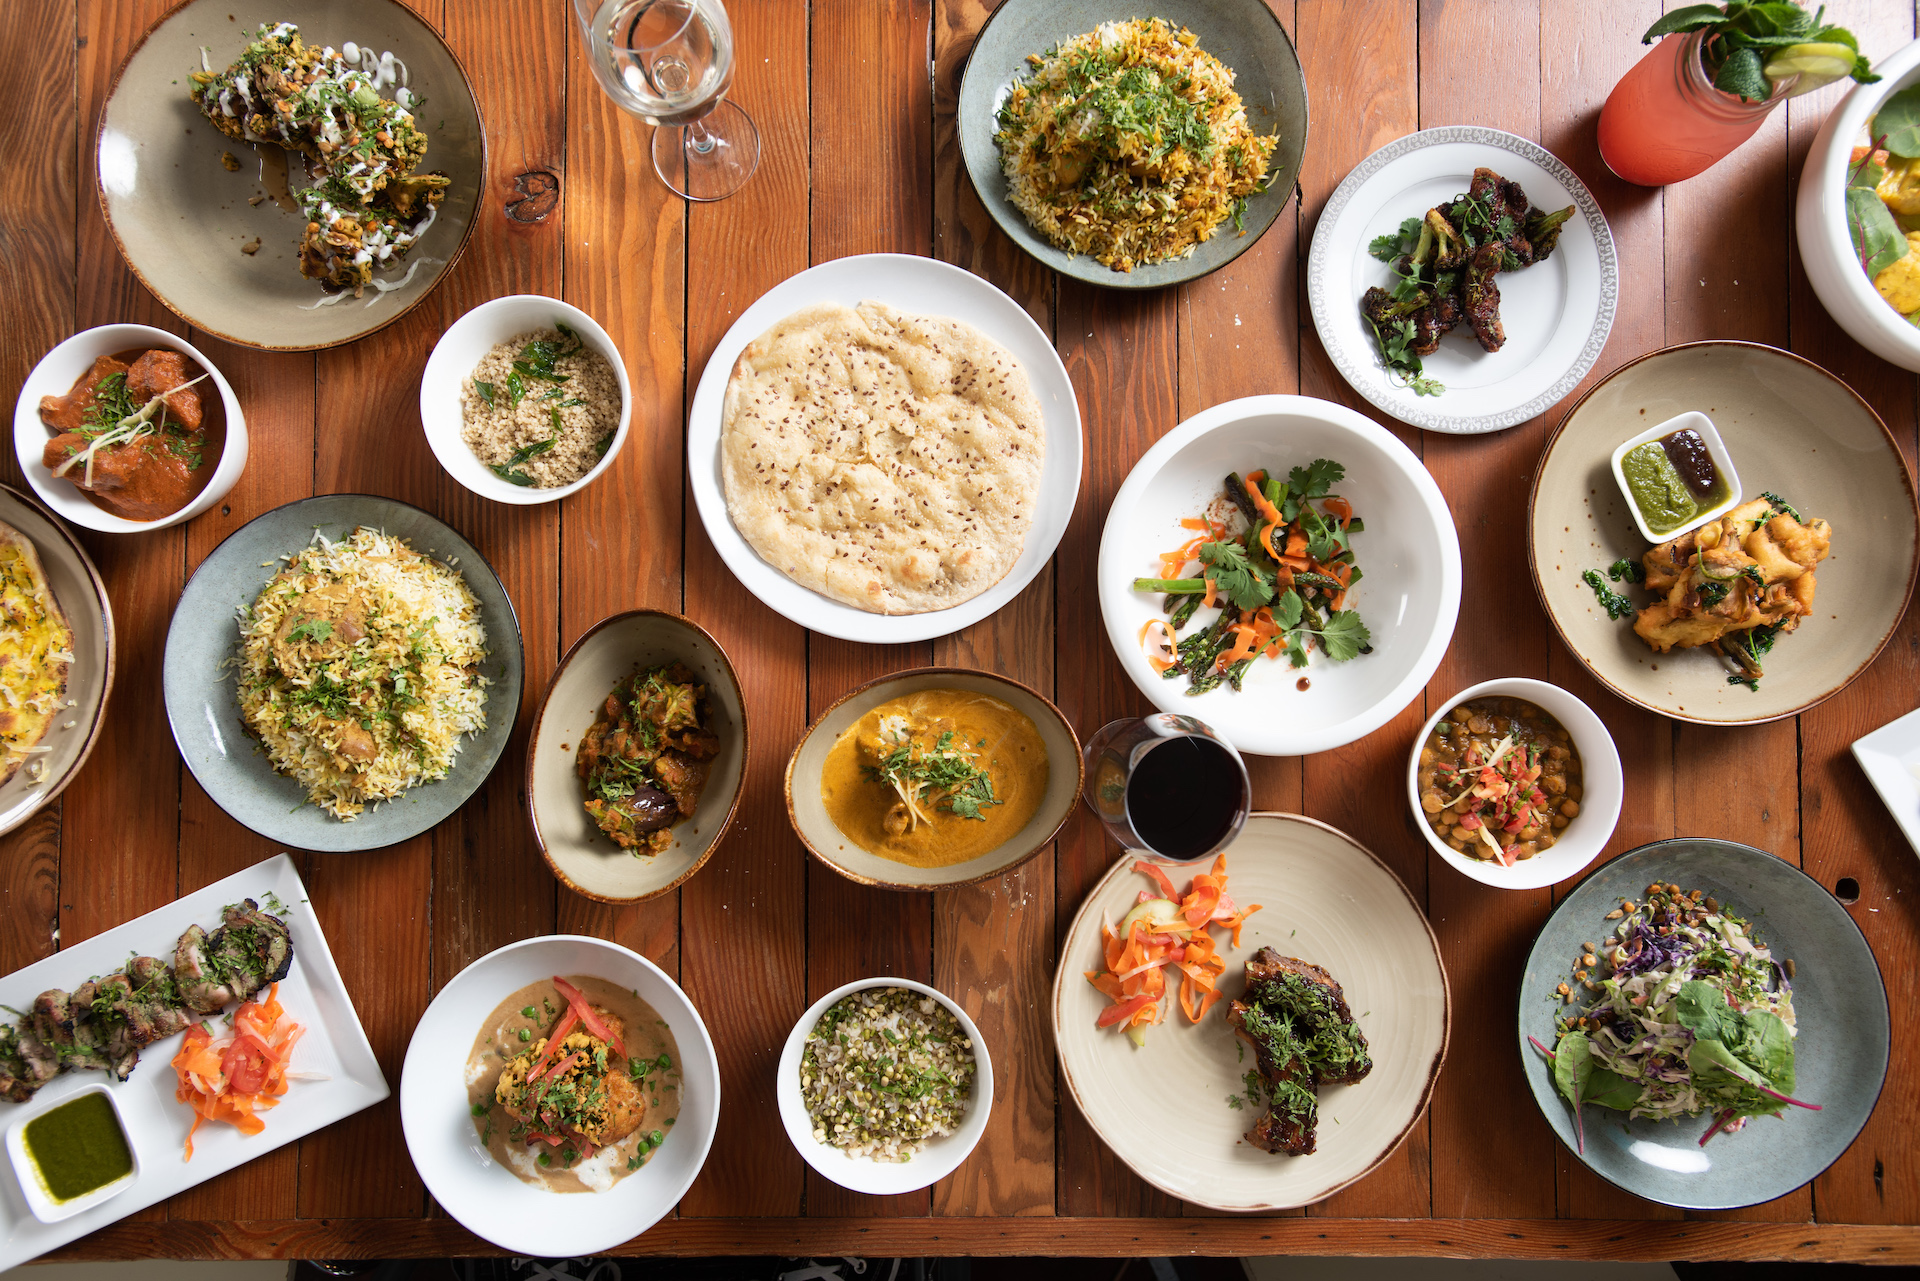 There's no shortage of dishes to enjoy at the rebranded Ritu.